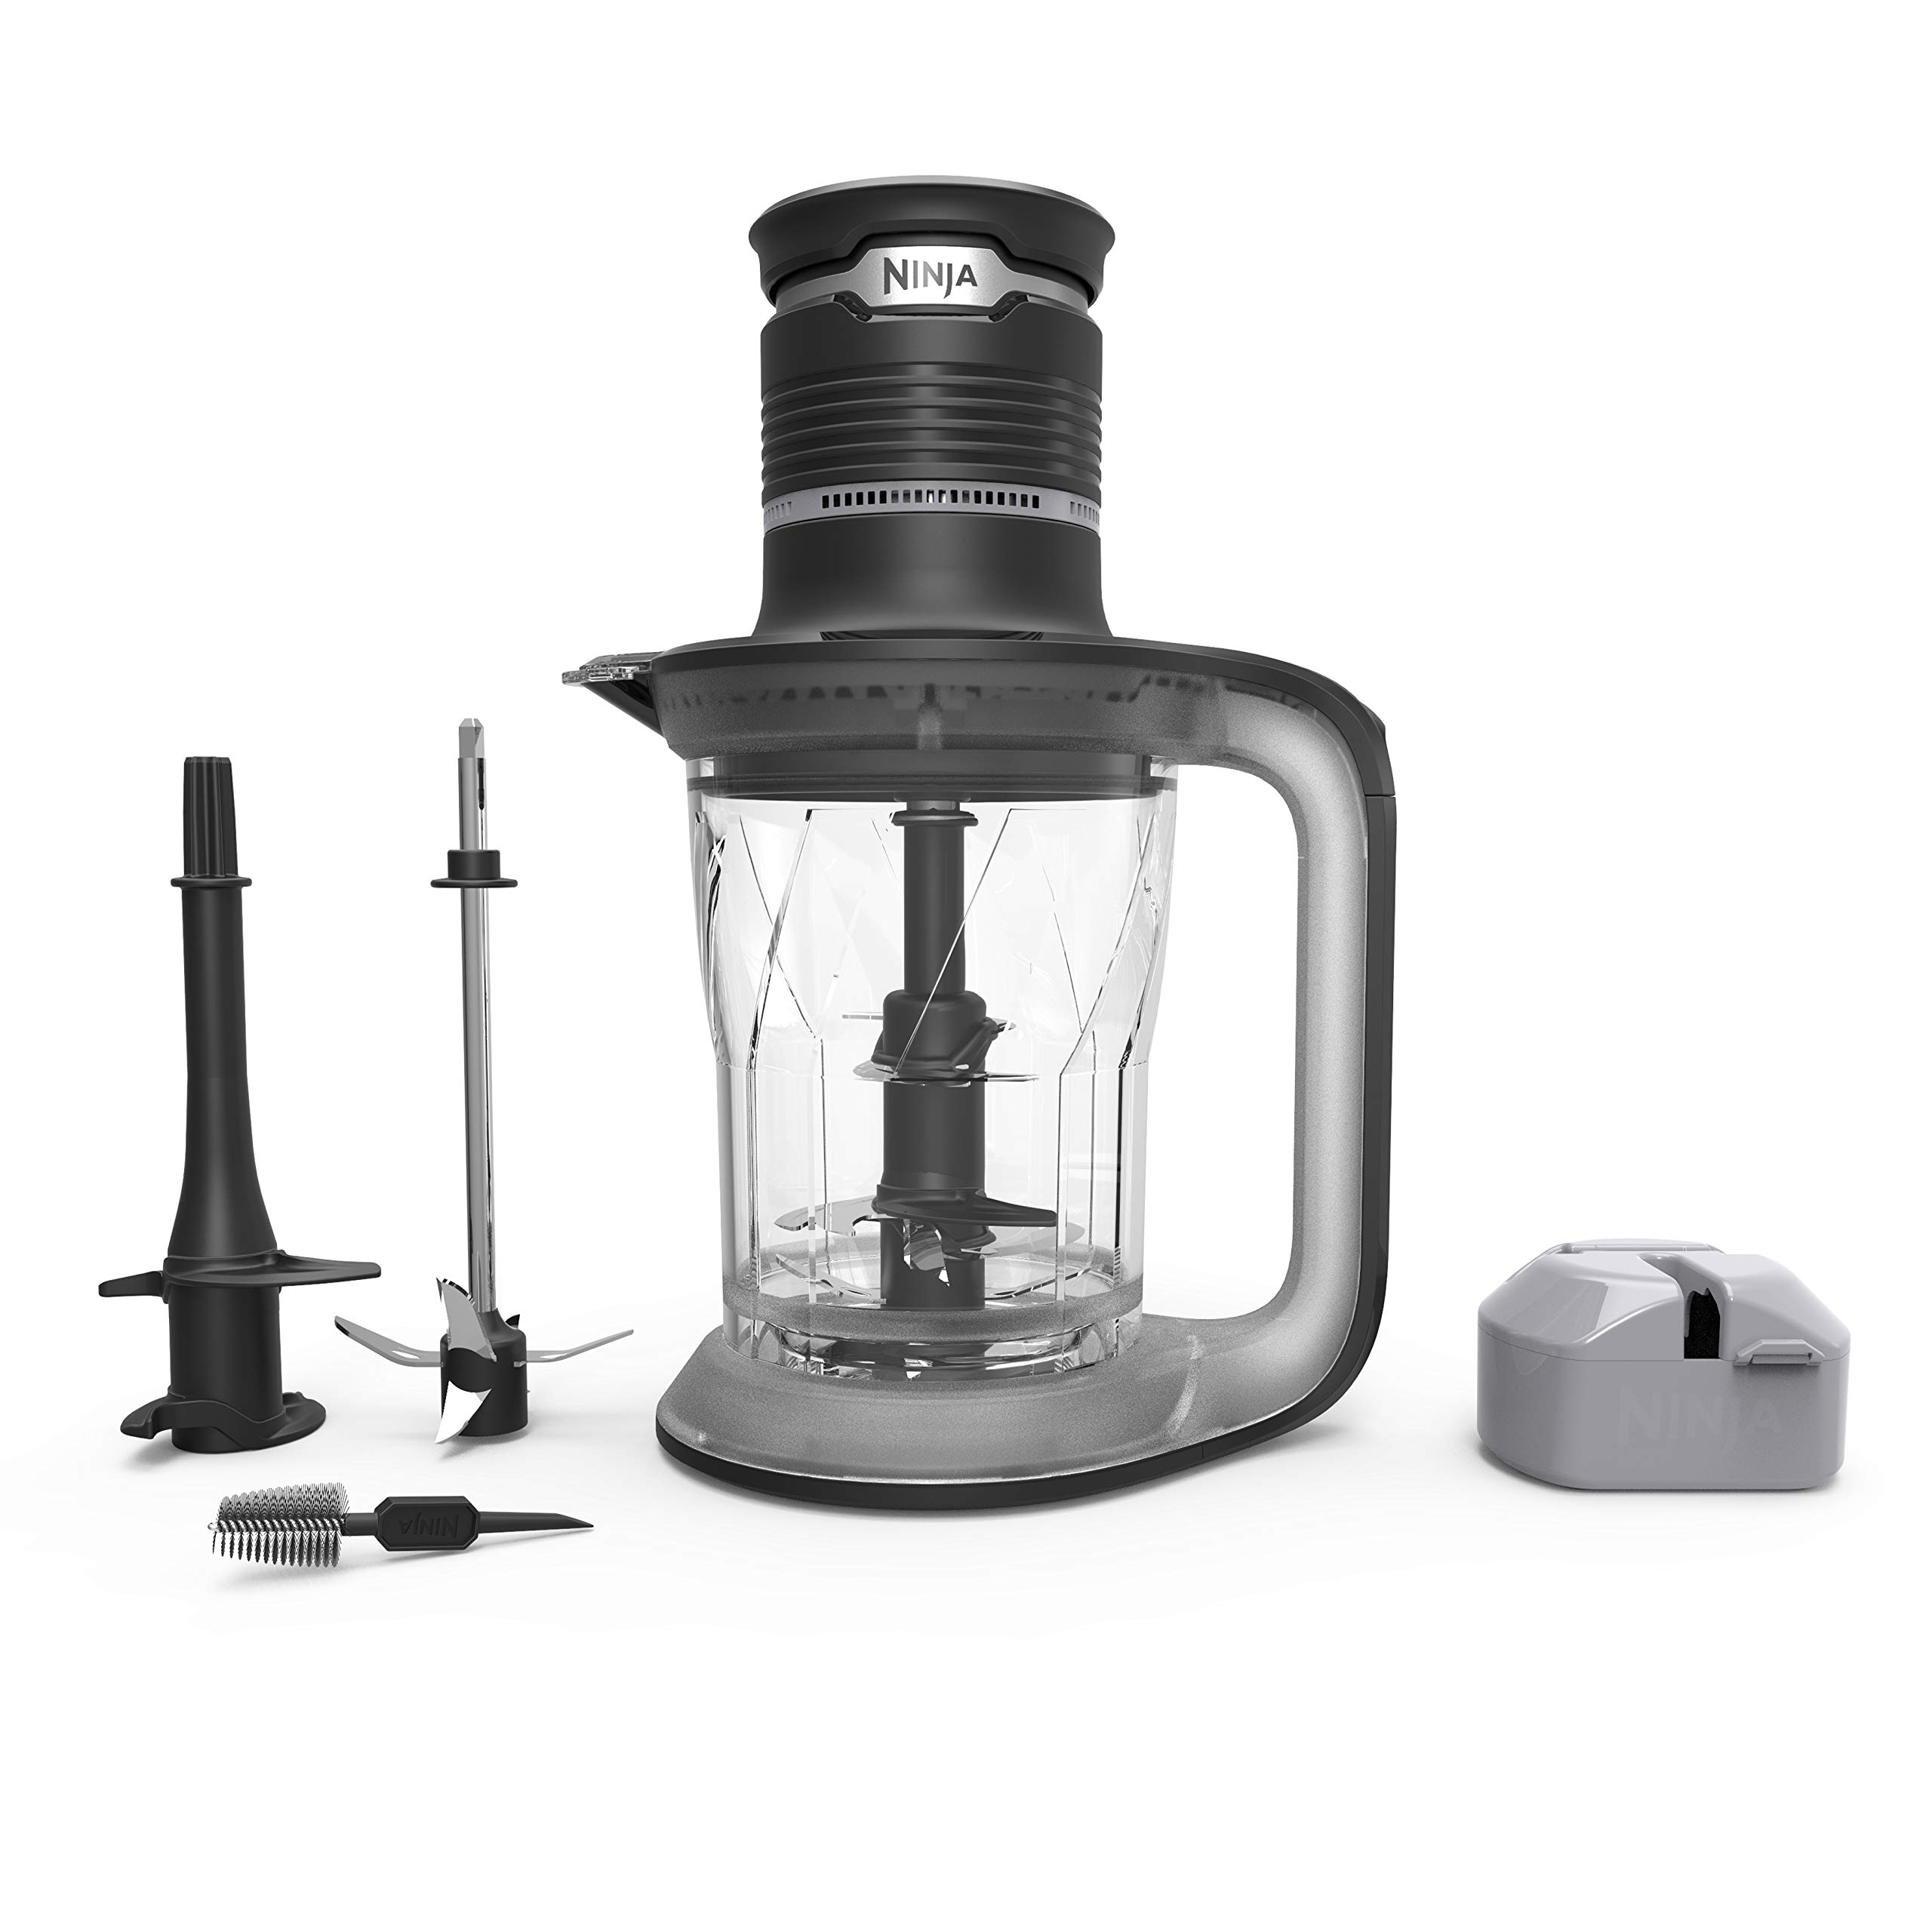 Ninja Ultra Prep Food Processor and Blender with Lightweight 700 Watt Power Pod for Dough, Smoothies, Chopping, Blending (PS101), Black/Clear